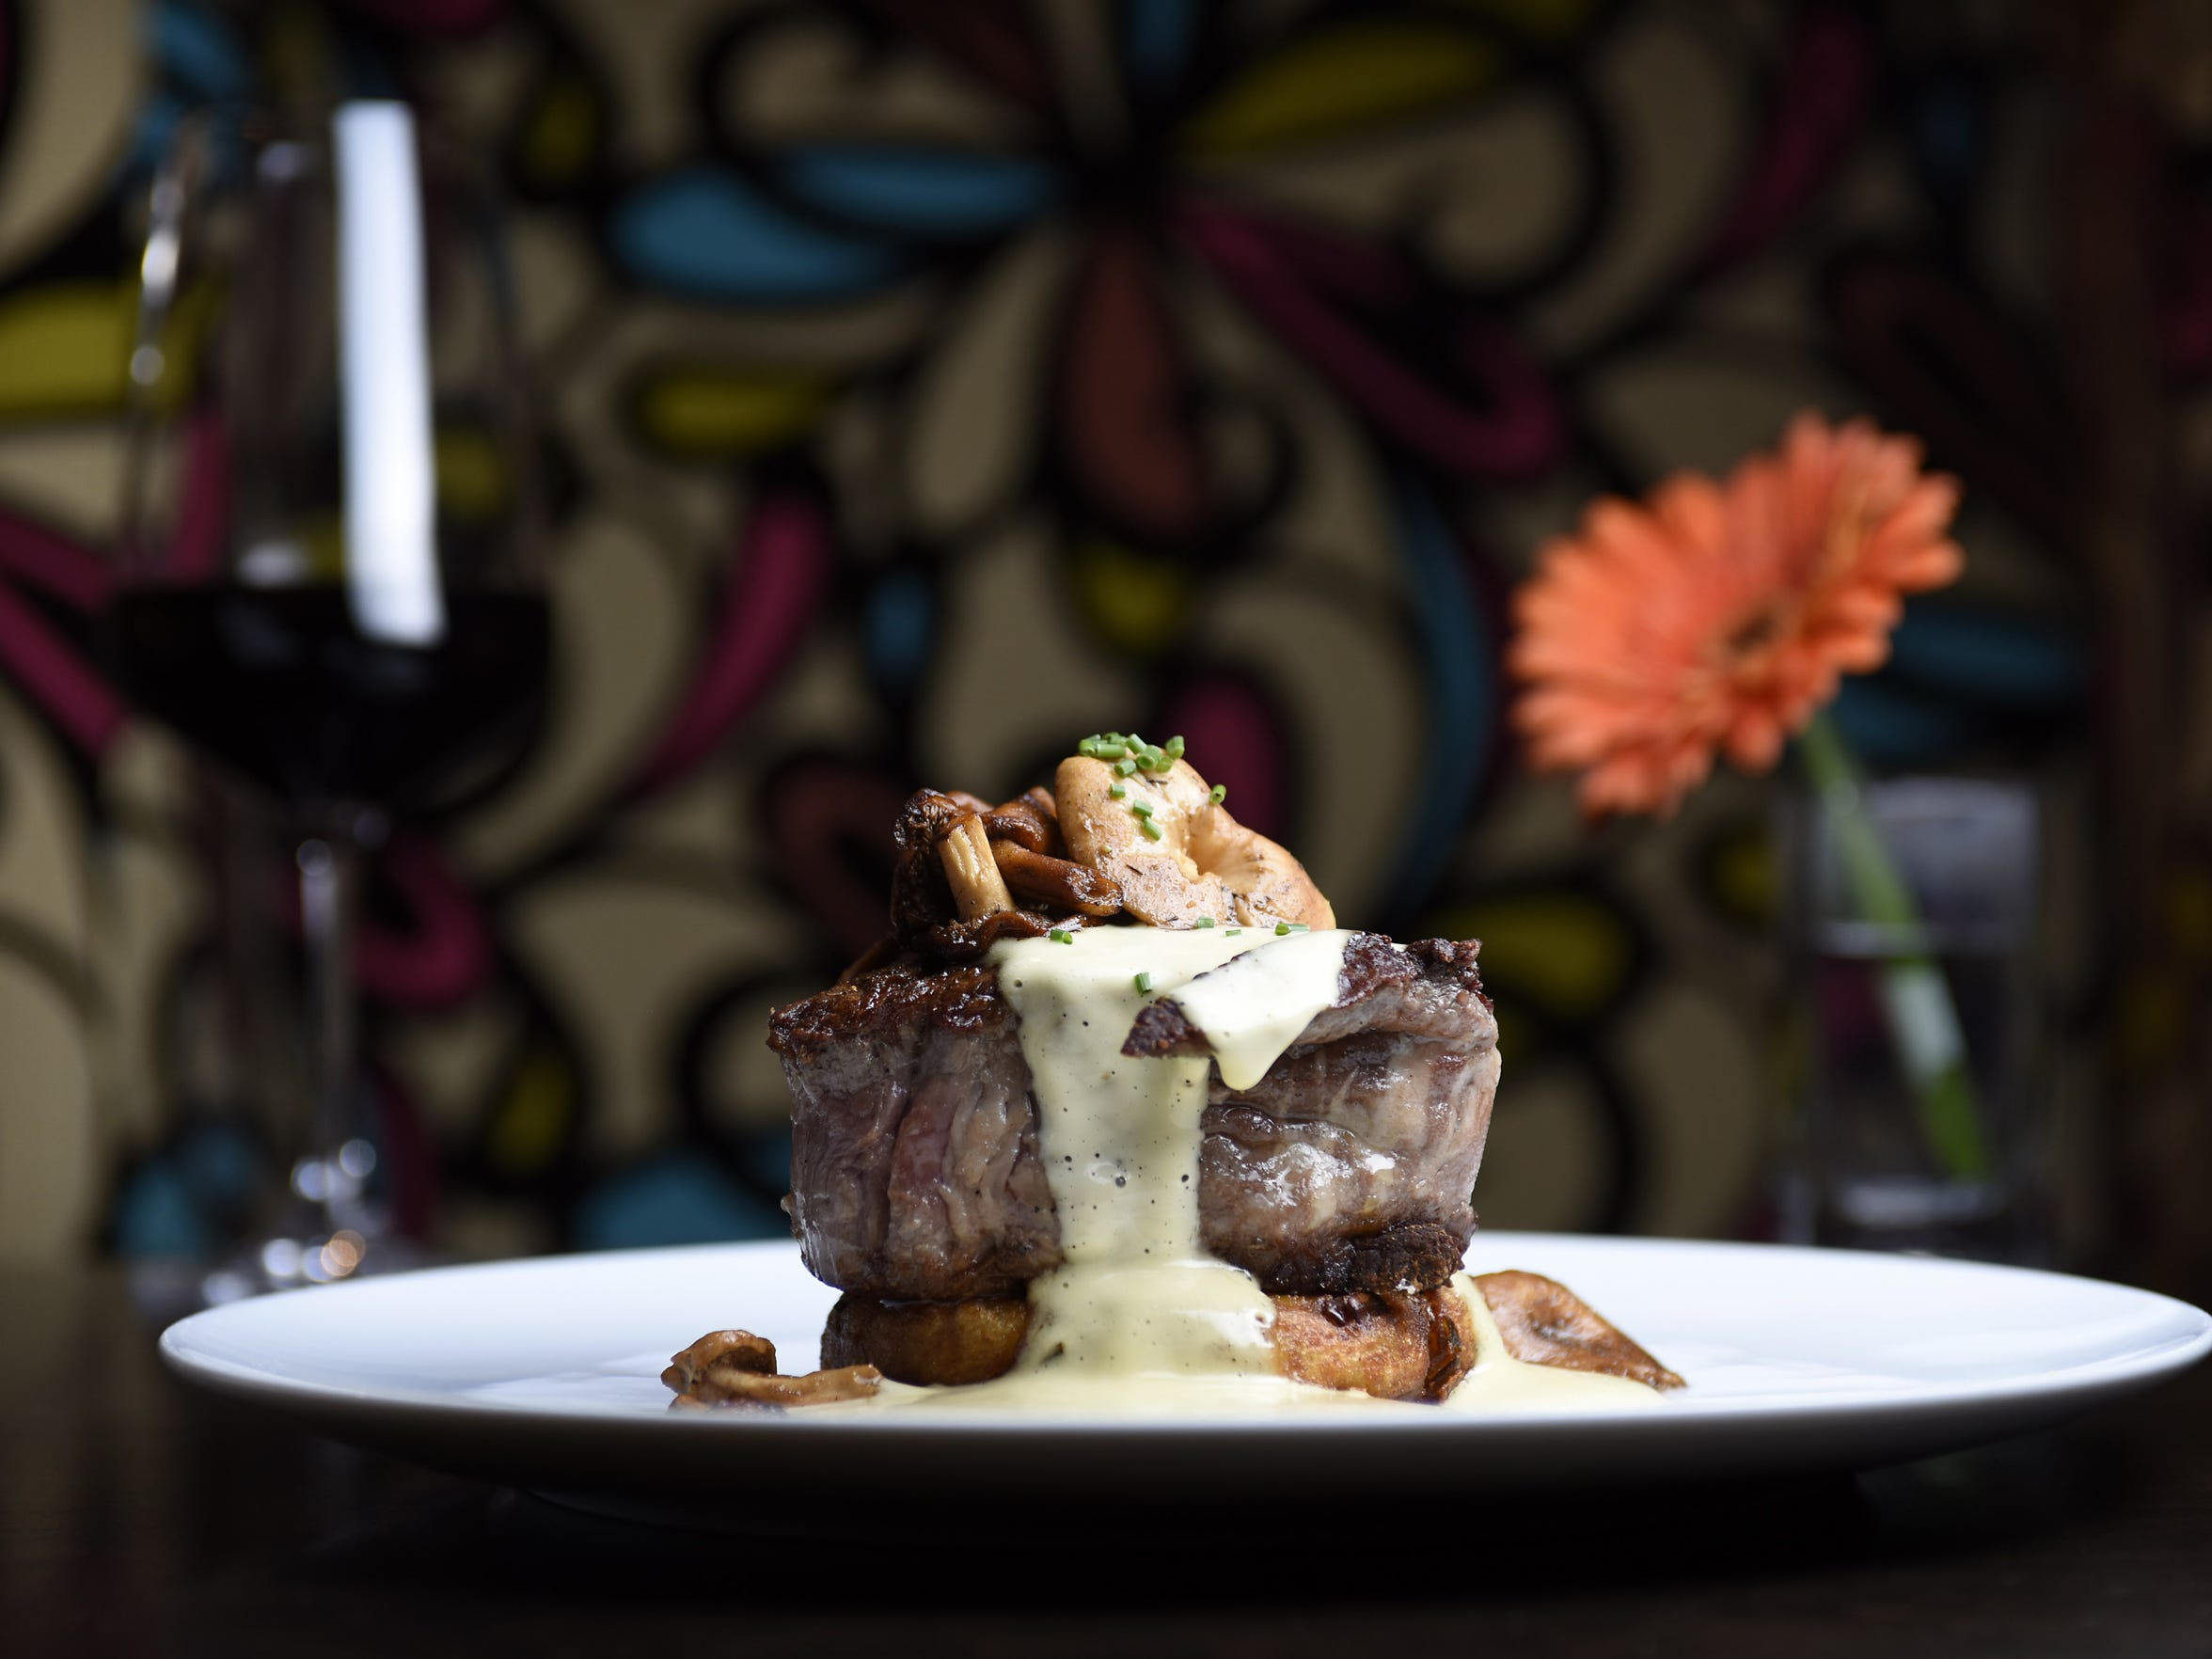 This filet of beef dish by chef Ariane Duarte beat